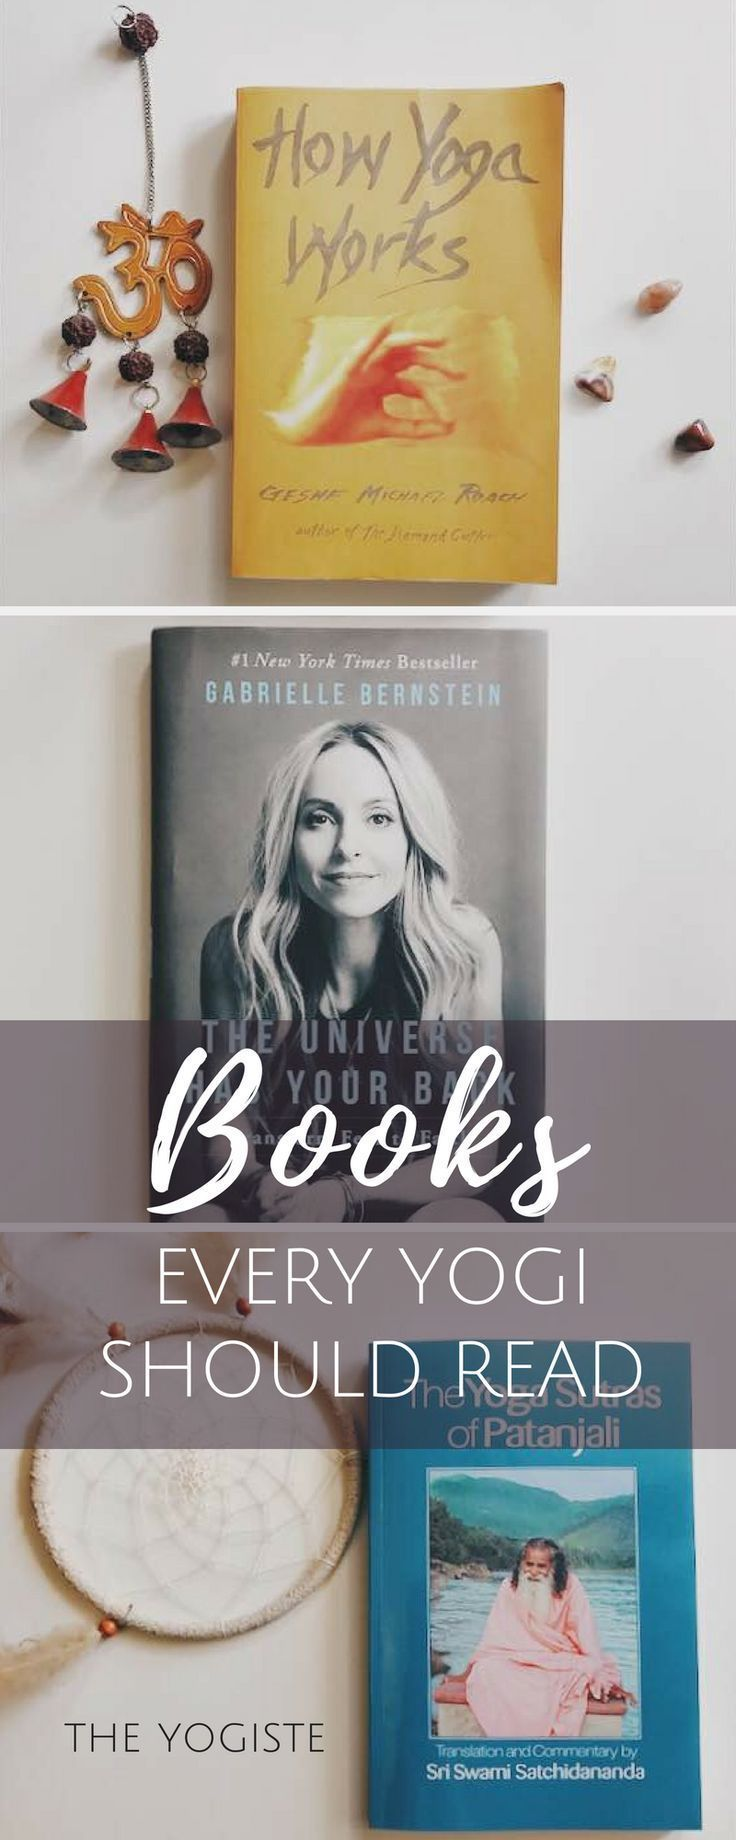 Recommendations - THE YOGISTE